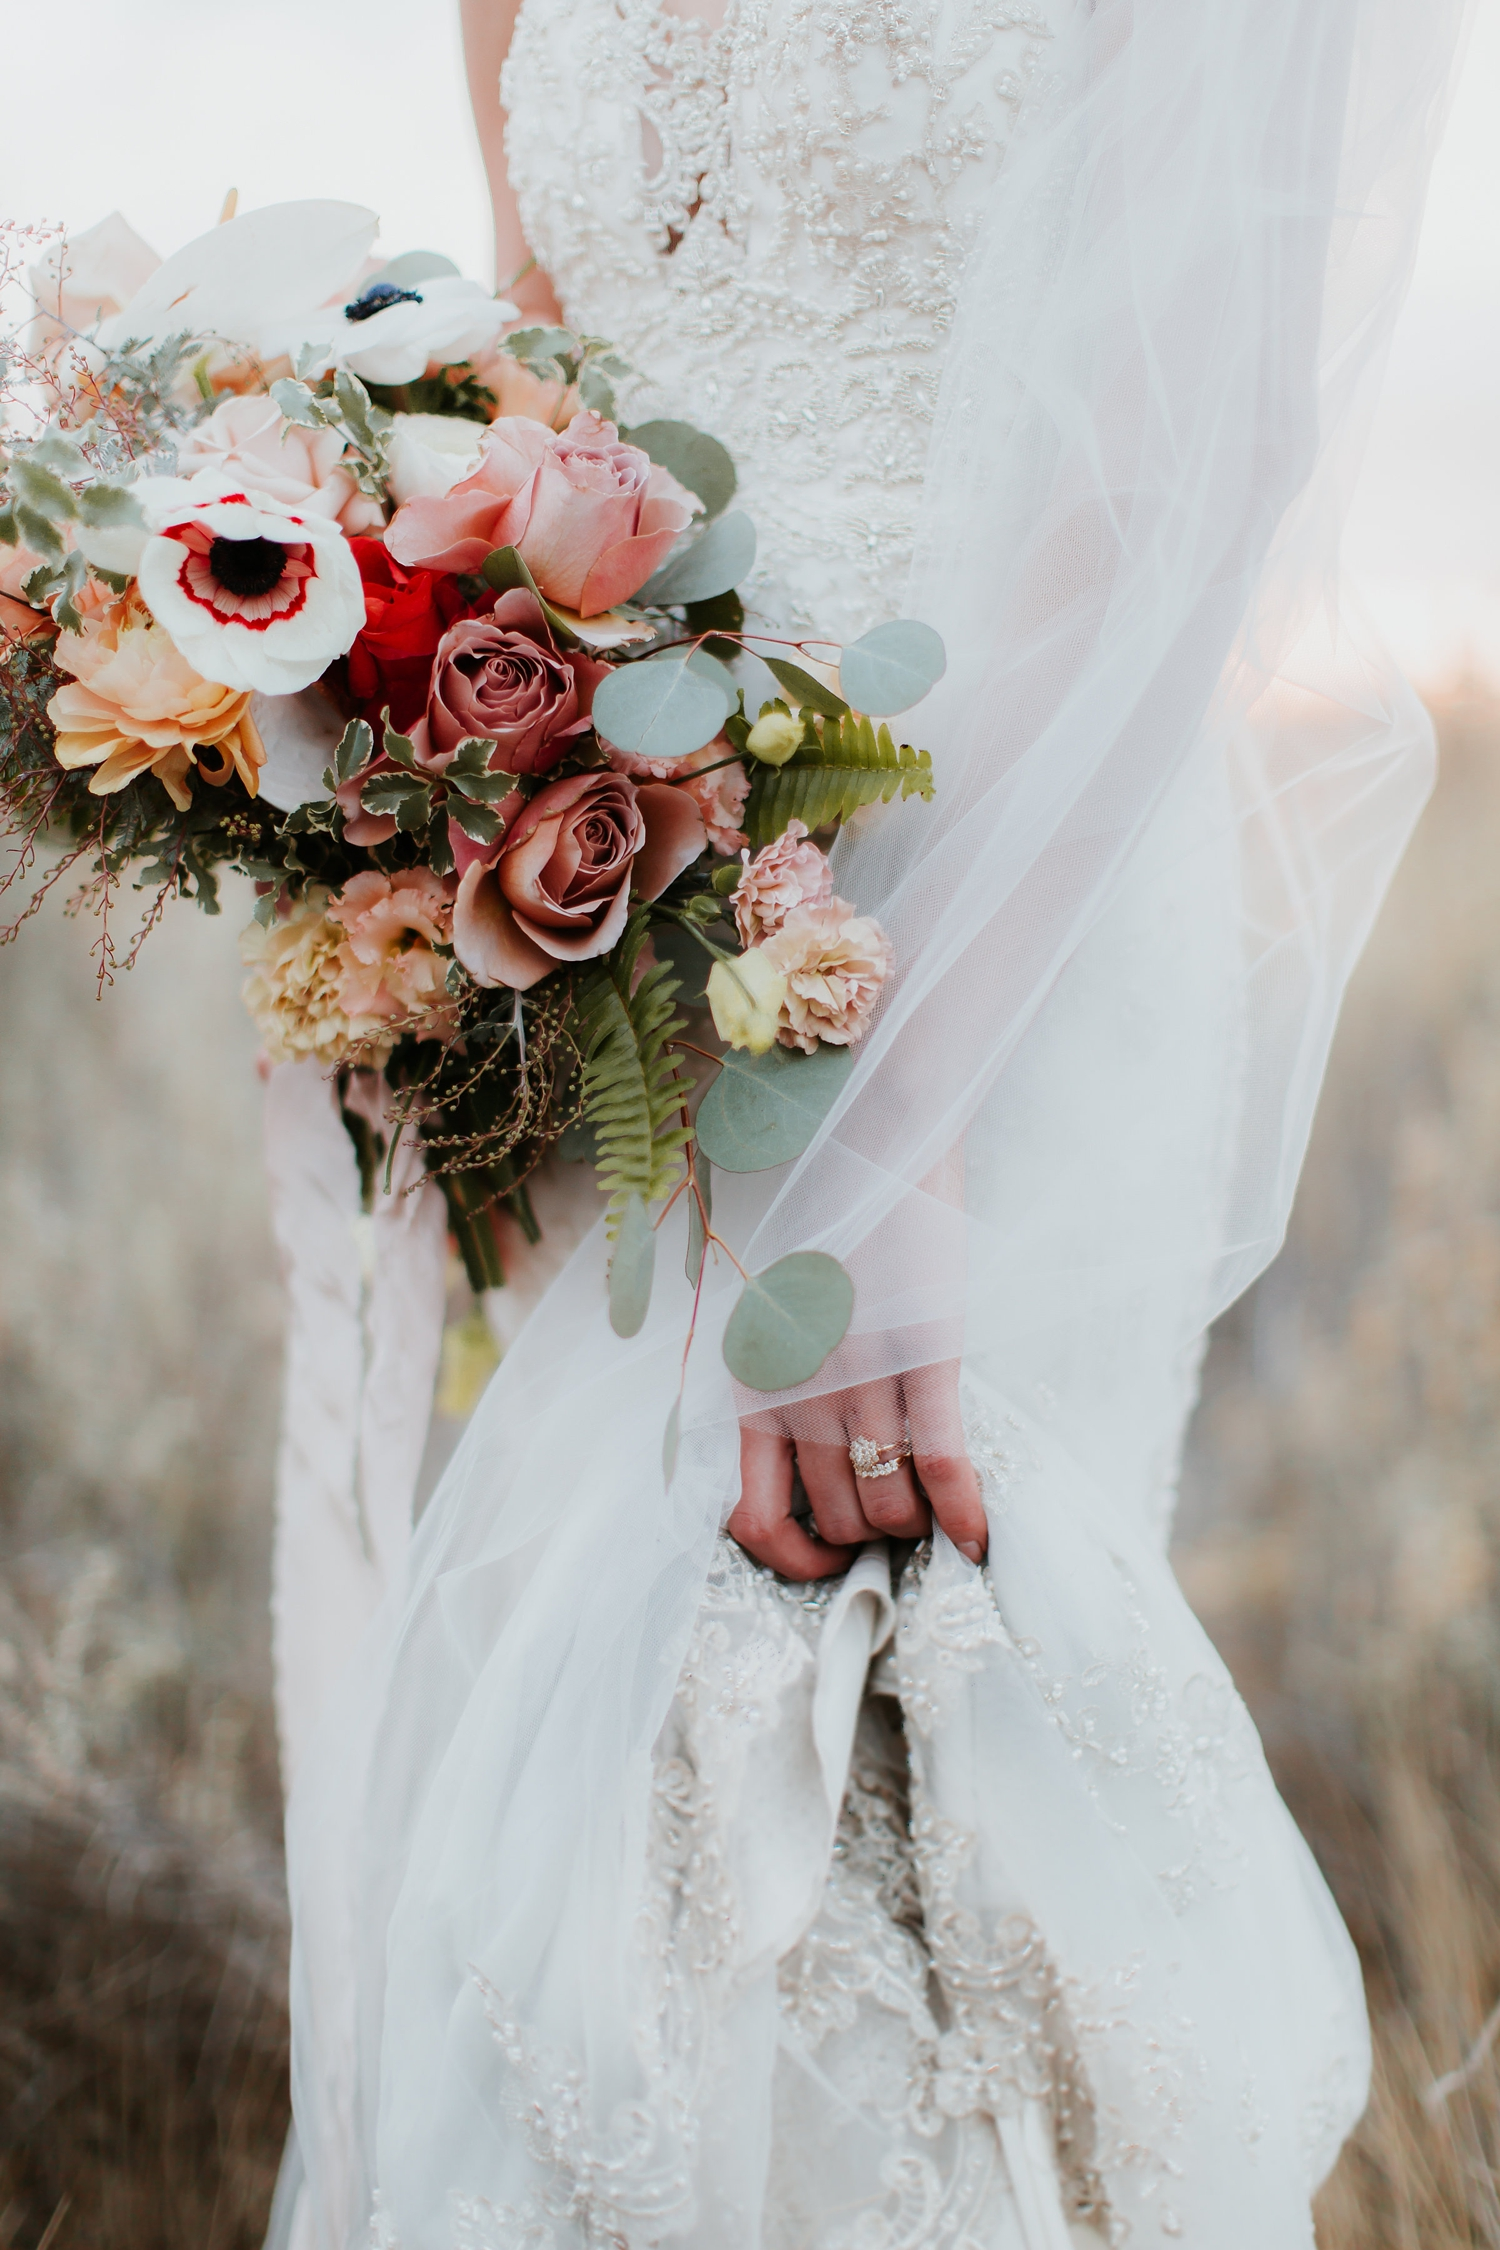 Alicia+lucia+photography+-+albuquerque+wedding+photographer+-+santa+fe+wedding+photography+-+new+mexico+wedding+photographer+-+la+fonda+wedding+-+la+fonda+winter+wedding_0112.jpg